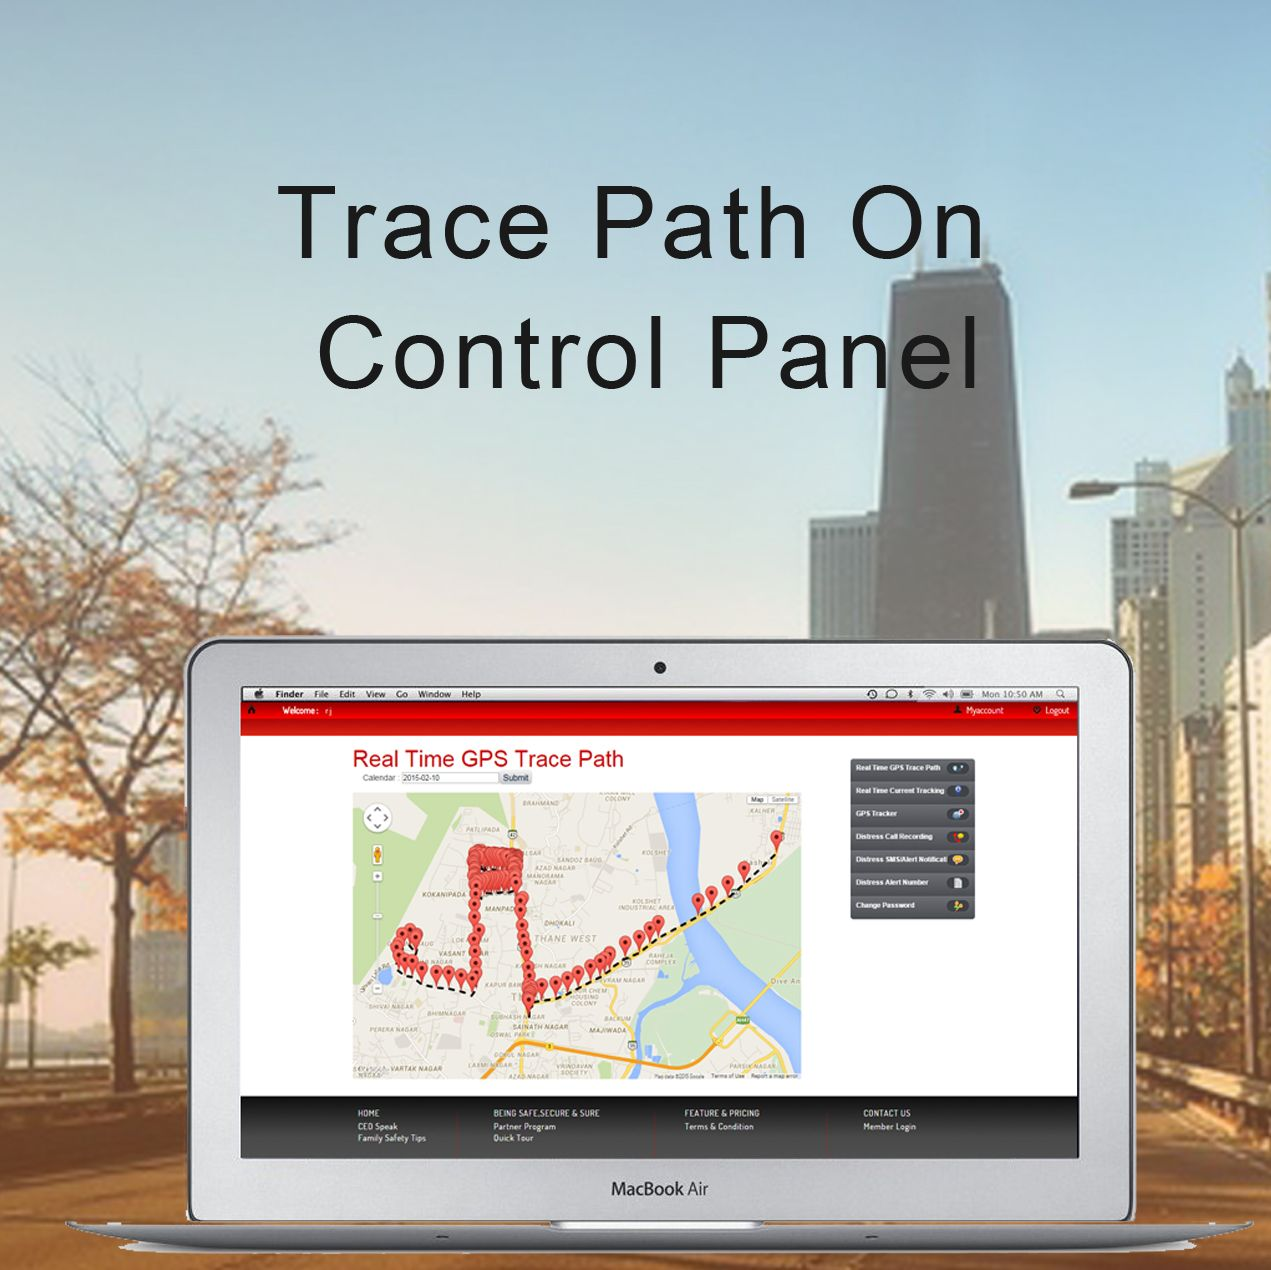 Trace your Family/Friend's path in Real Time  from anywhere 24×7 from the App's Website Control Panel.